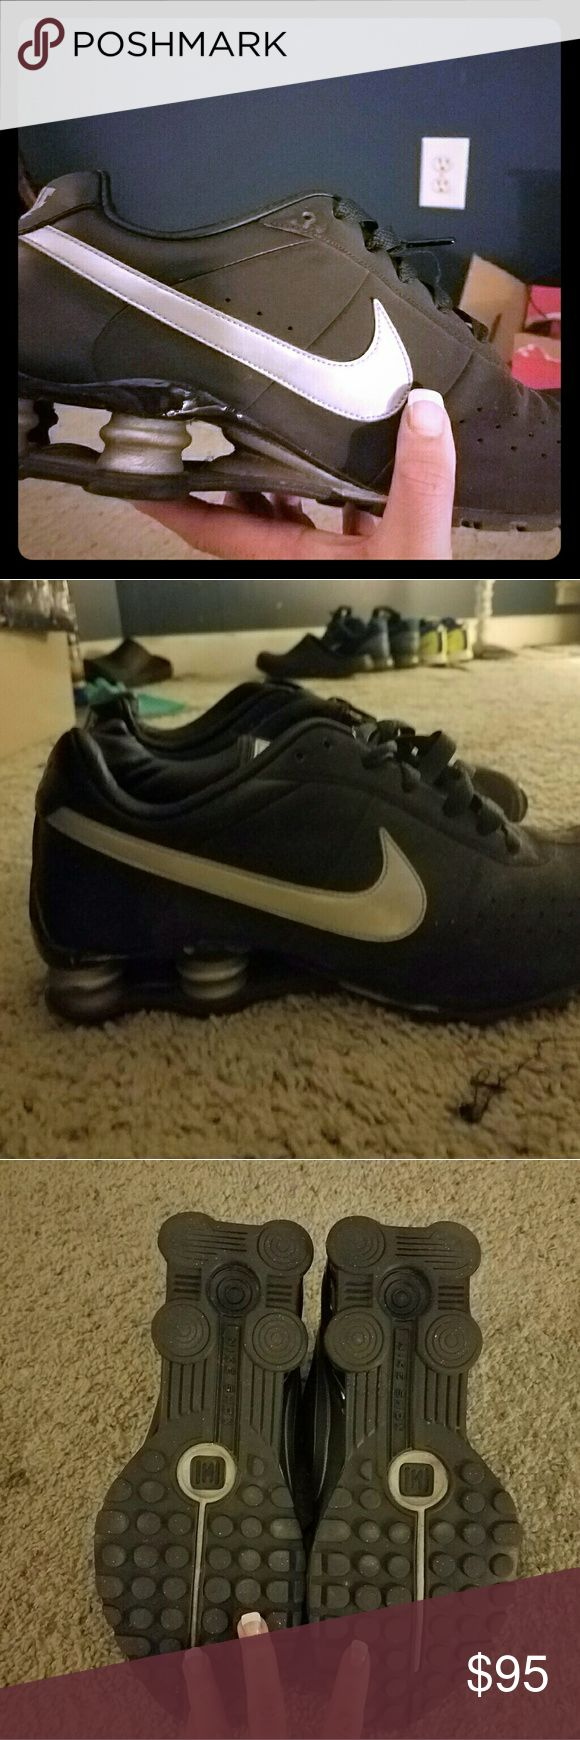 Nike mens shox classic ll Mens nike shox classic ll. Size 11.  Worn less than 5 times, theyre not the right size.  So they're in perfect condition. 4 Shox Box Design Classic Runner & Cross Trainer Leather Construction Nike Shoes Athletic Shoes